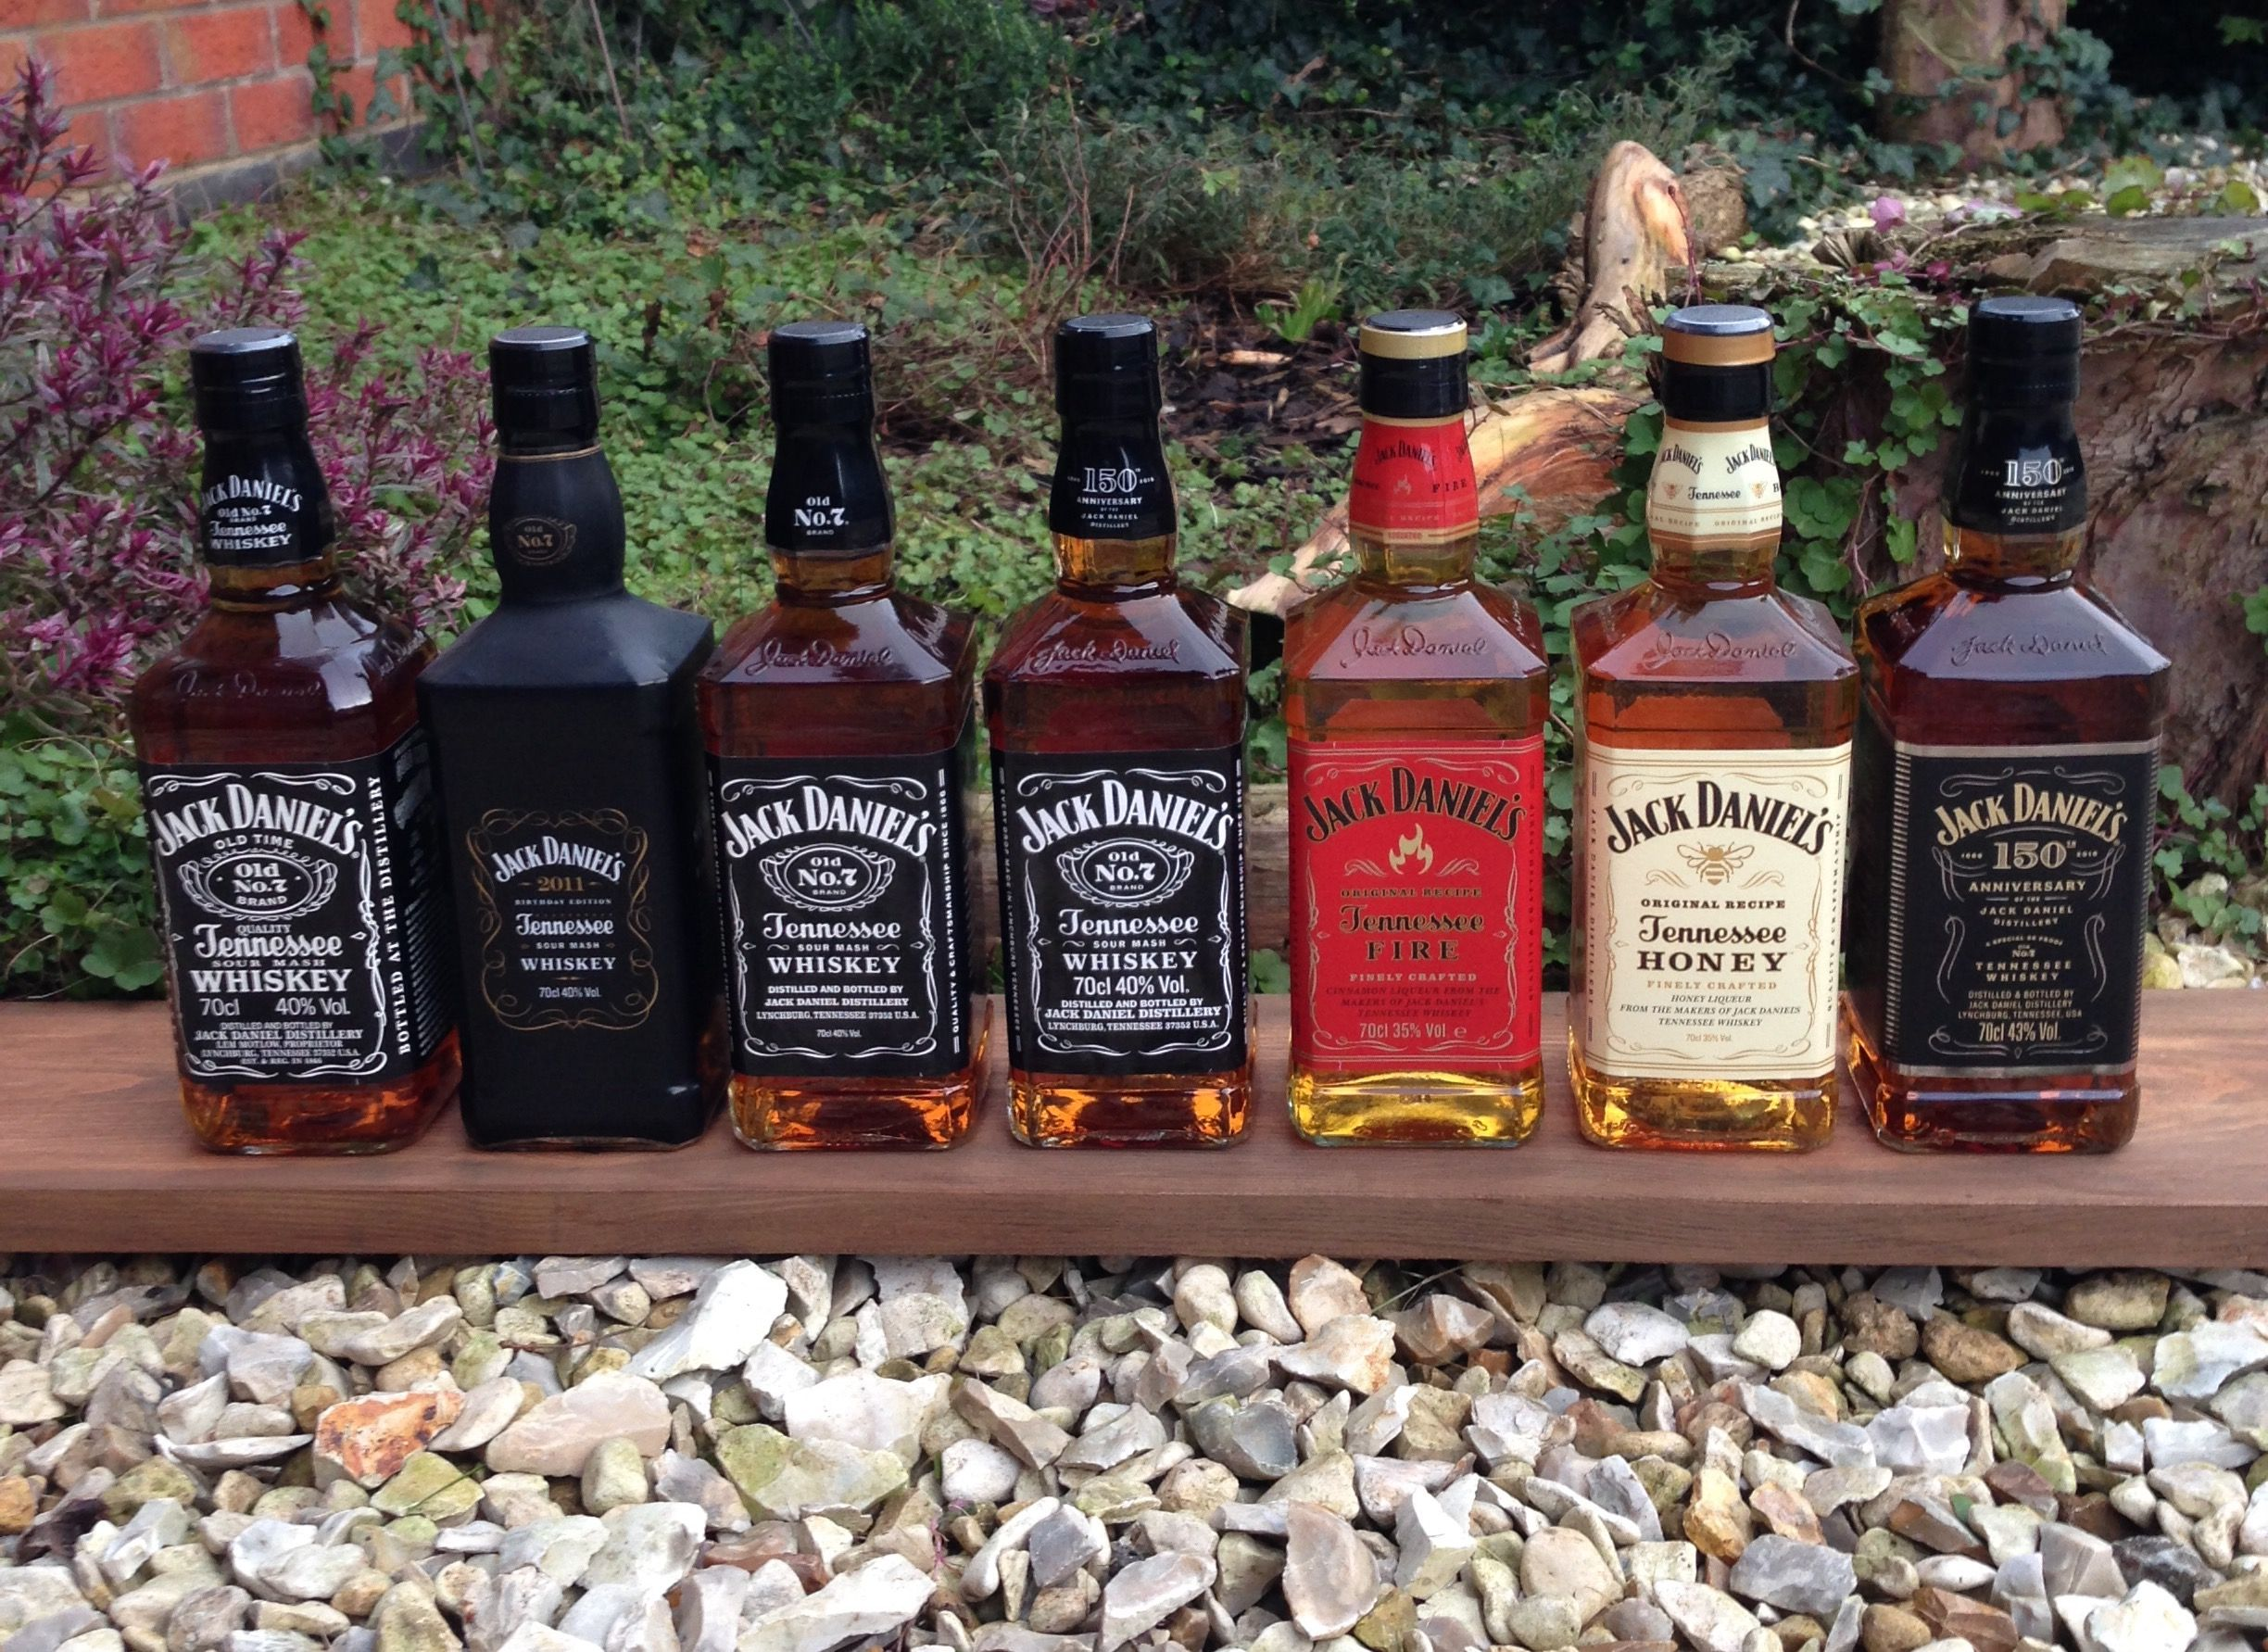 Pin By Perry Walters On Wine Beer Whiskey Gin Rum Champagne Jack Daniels Jack Daniel S Tennessee Whiskey Jack And Coke